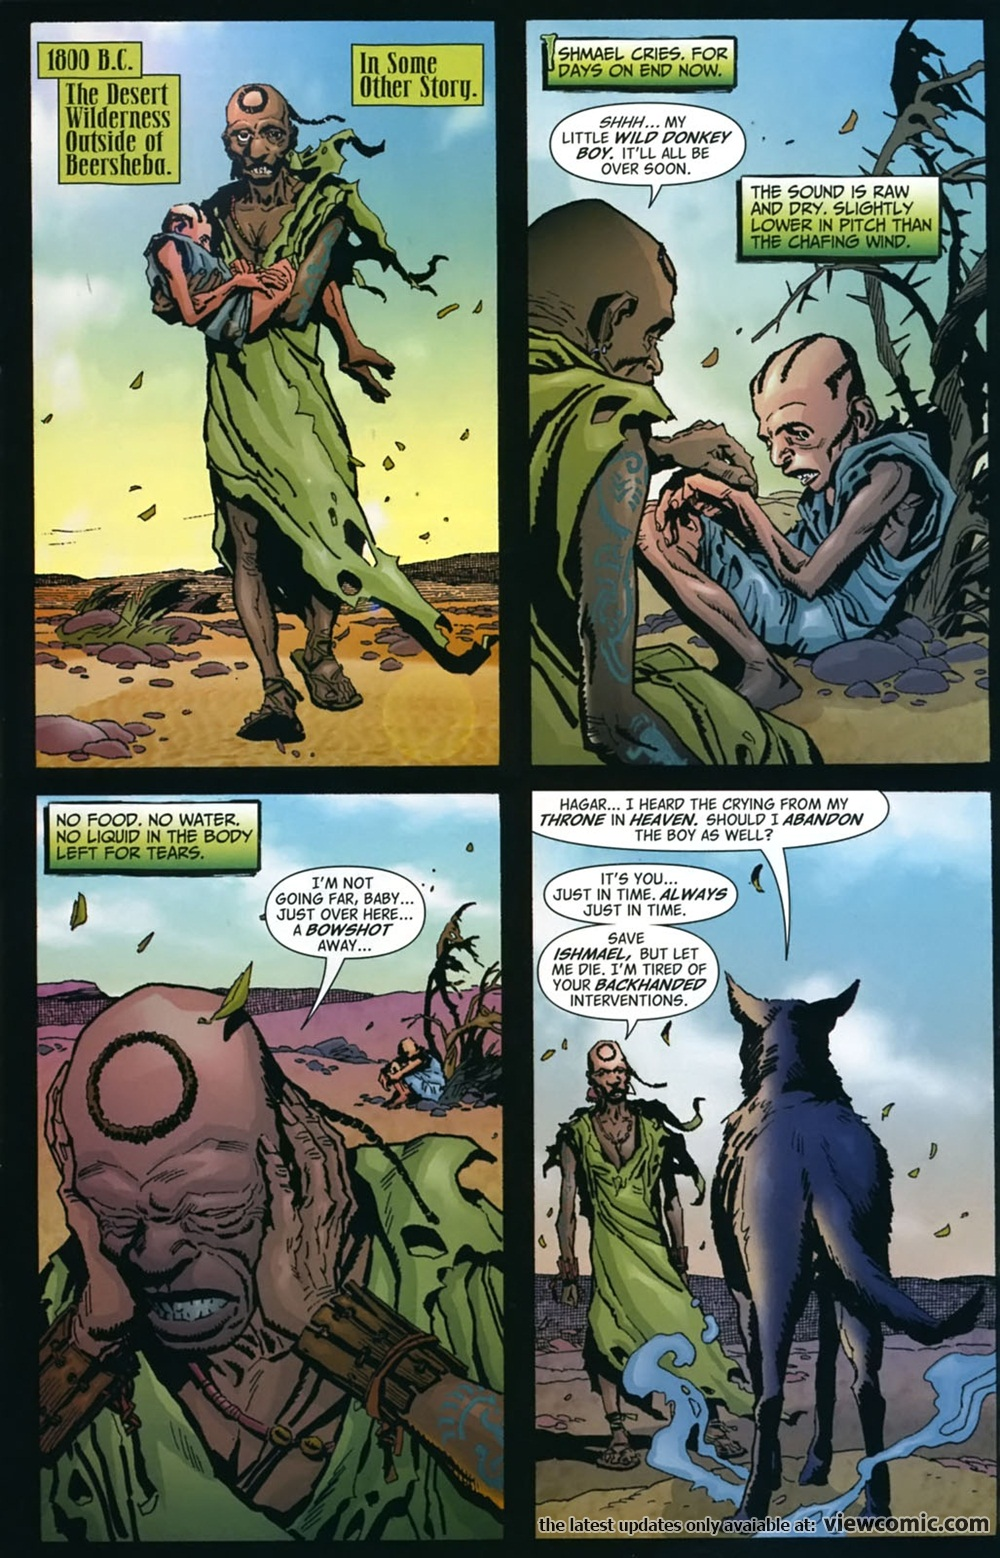 Swamp thing v4 024 reading comics online for The thing free online